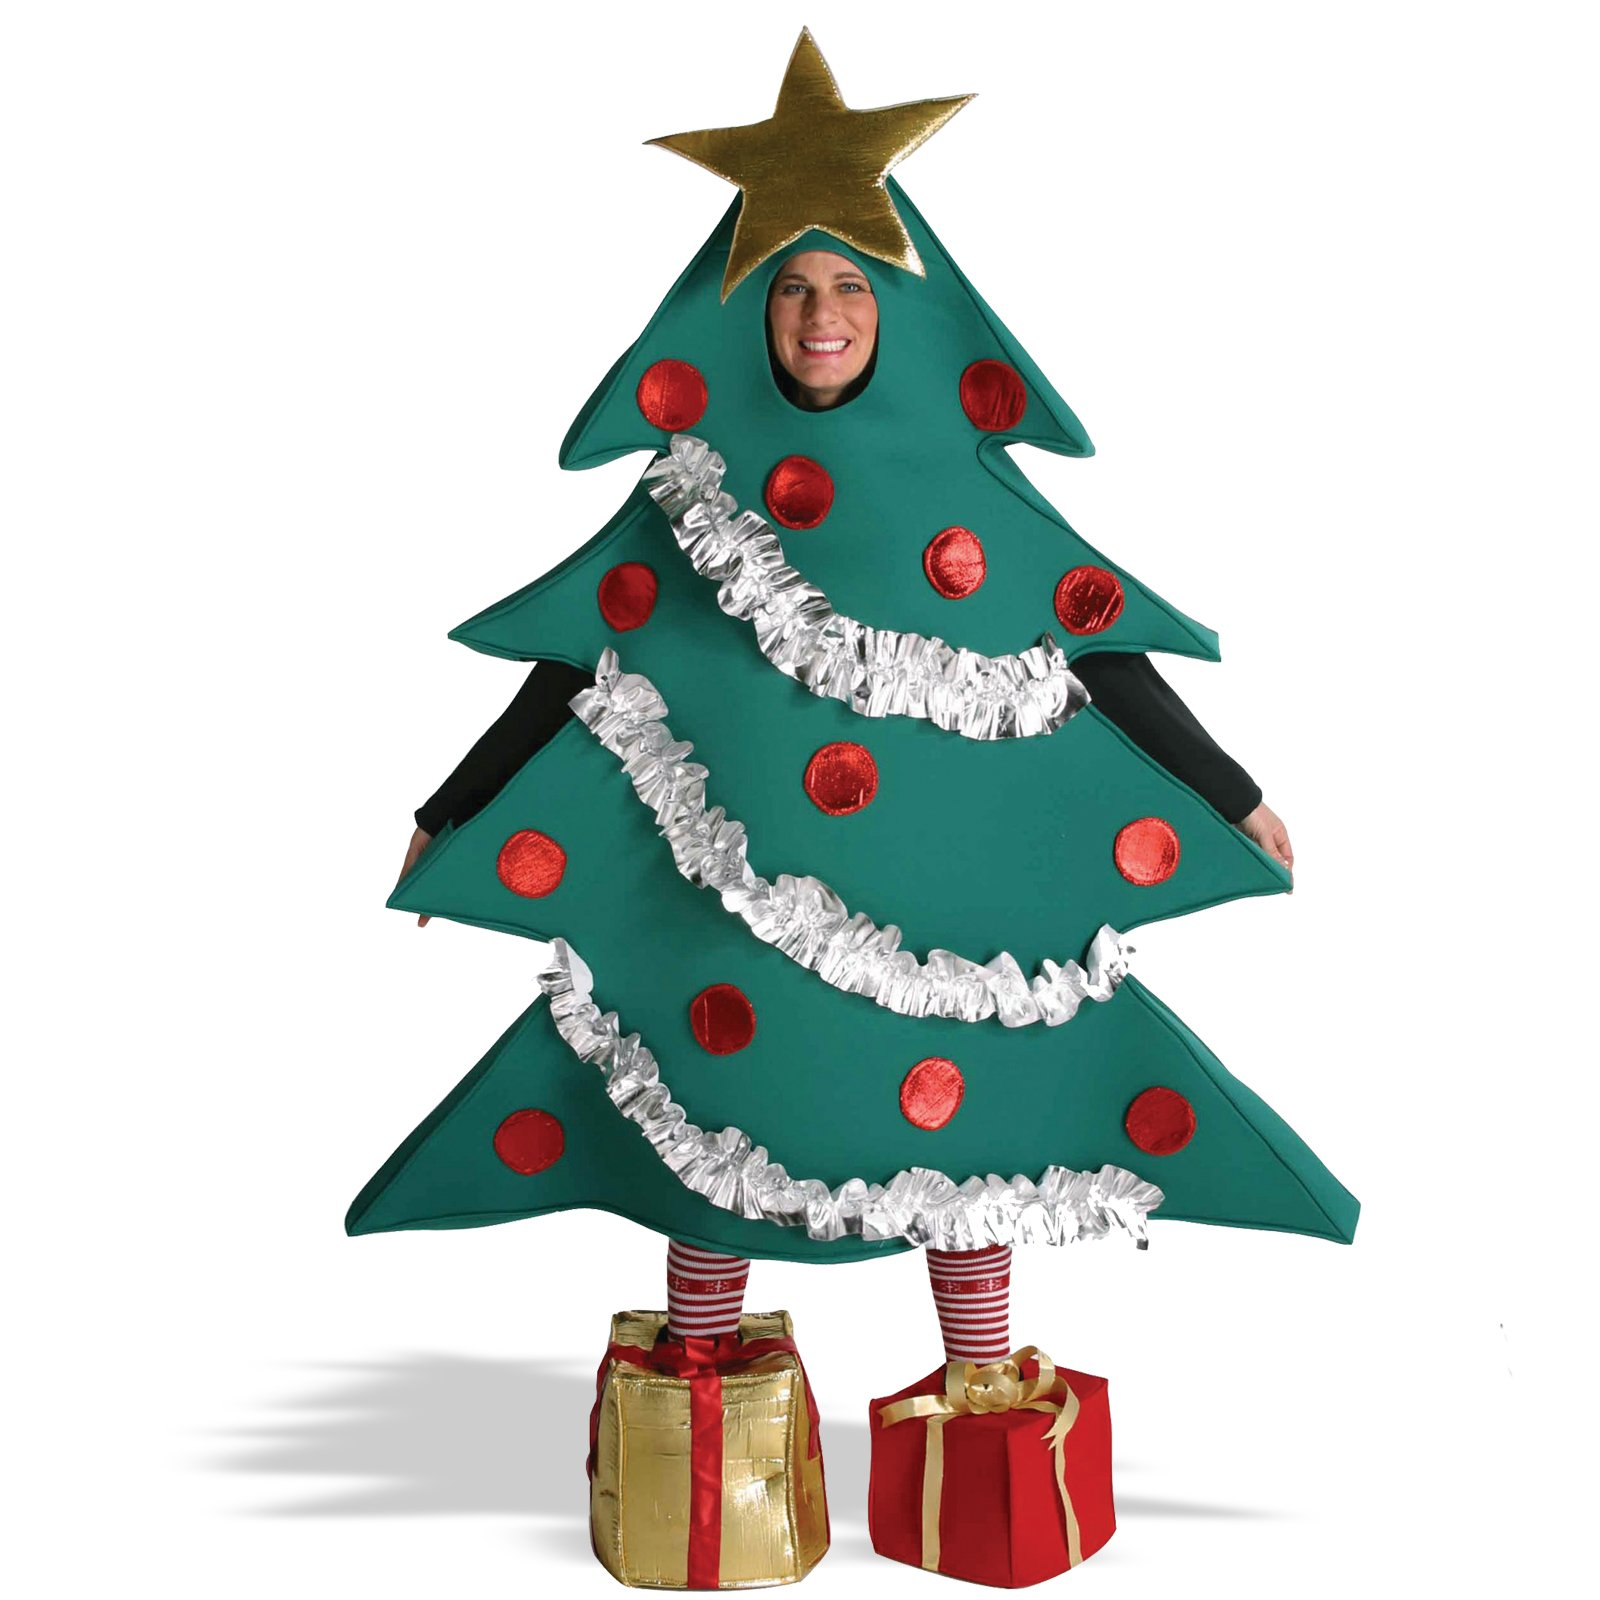 Christmas tree dress up images - Deluxe Christmas Tree Bodysuit Costume